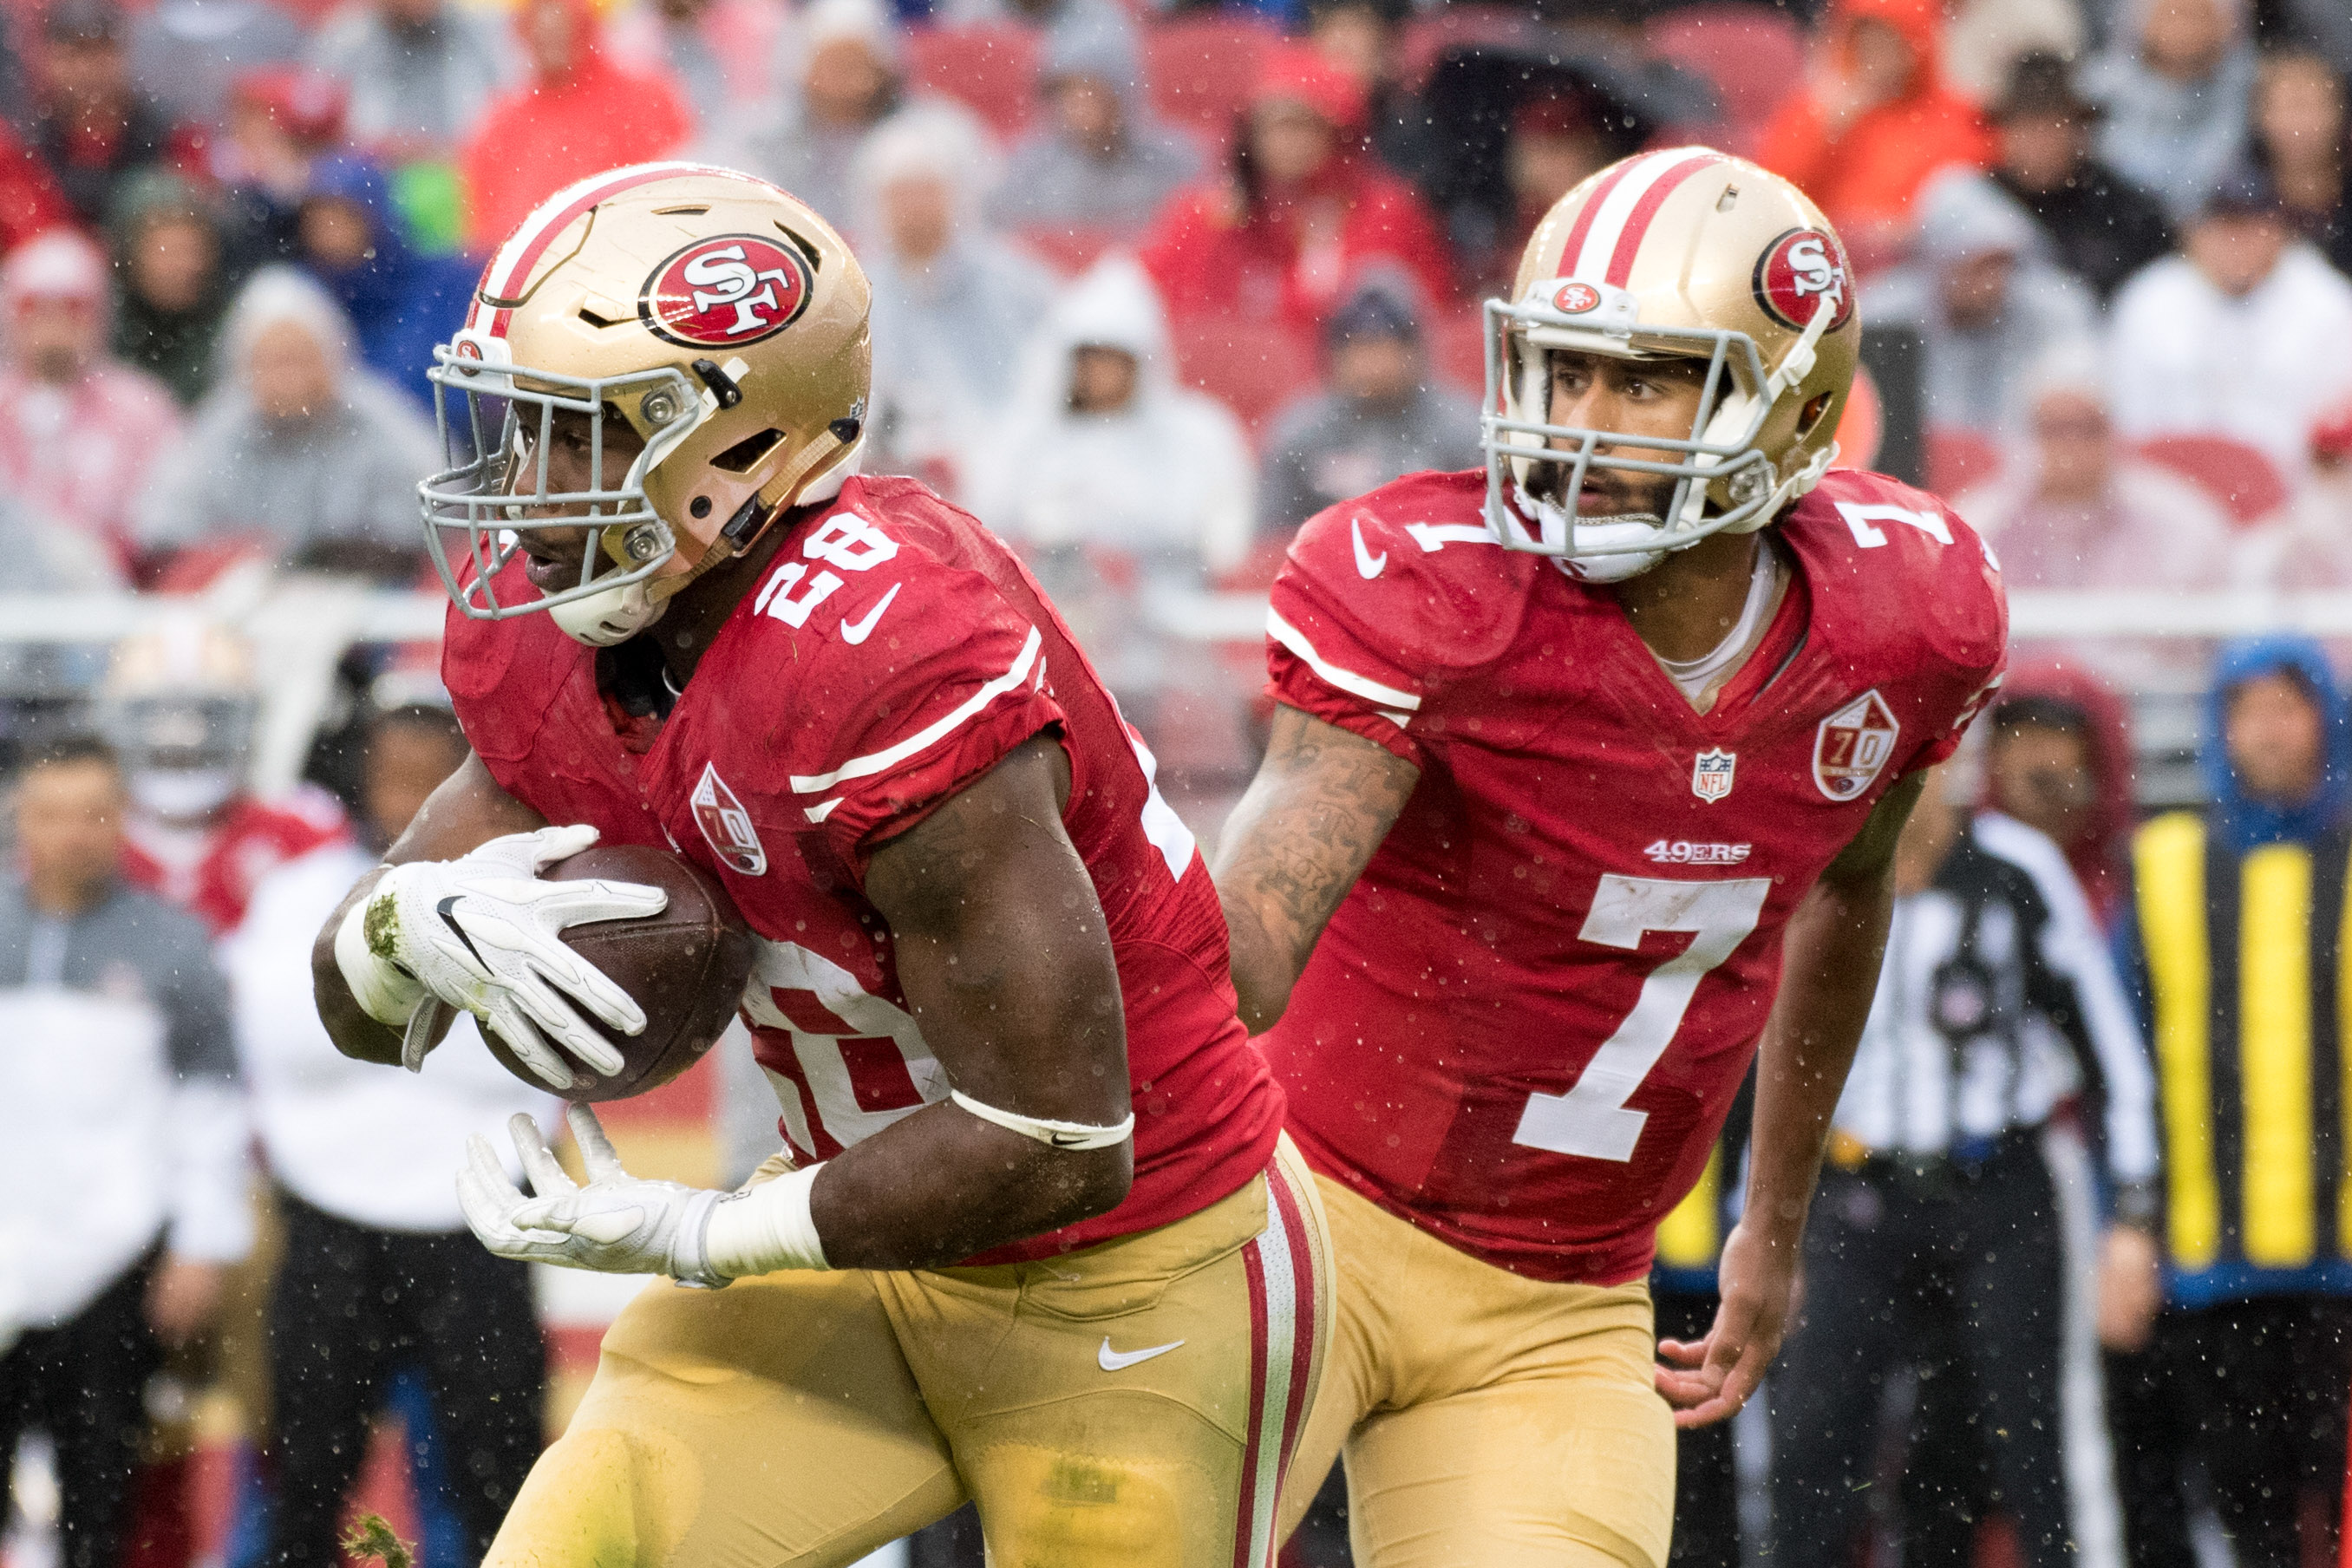 NFL: New England Patriots at San Francisco 49ers